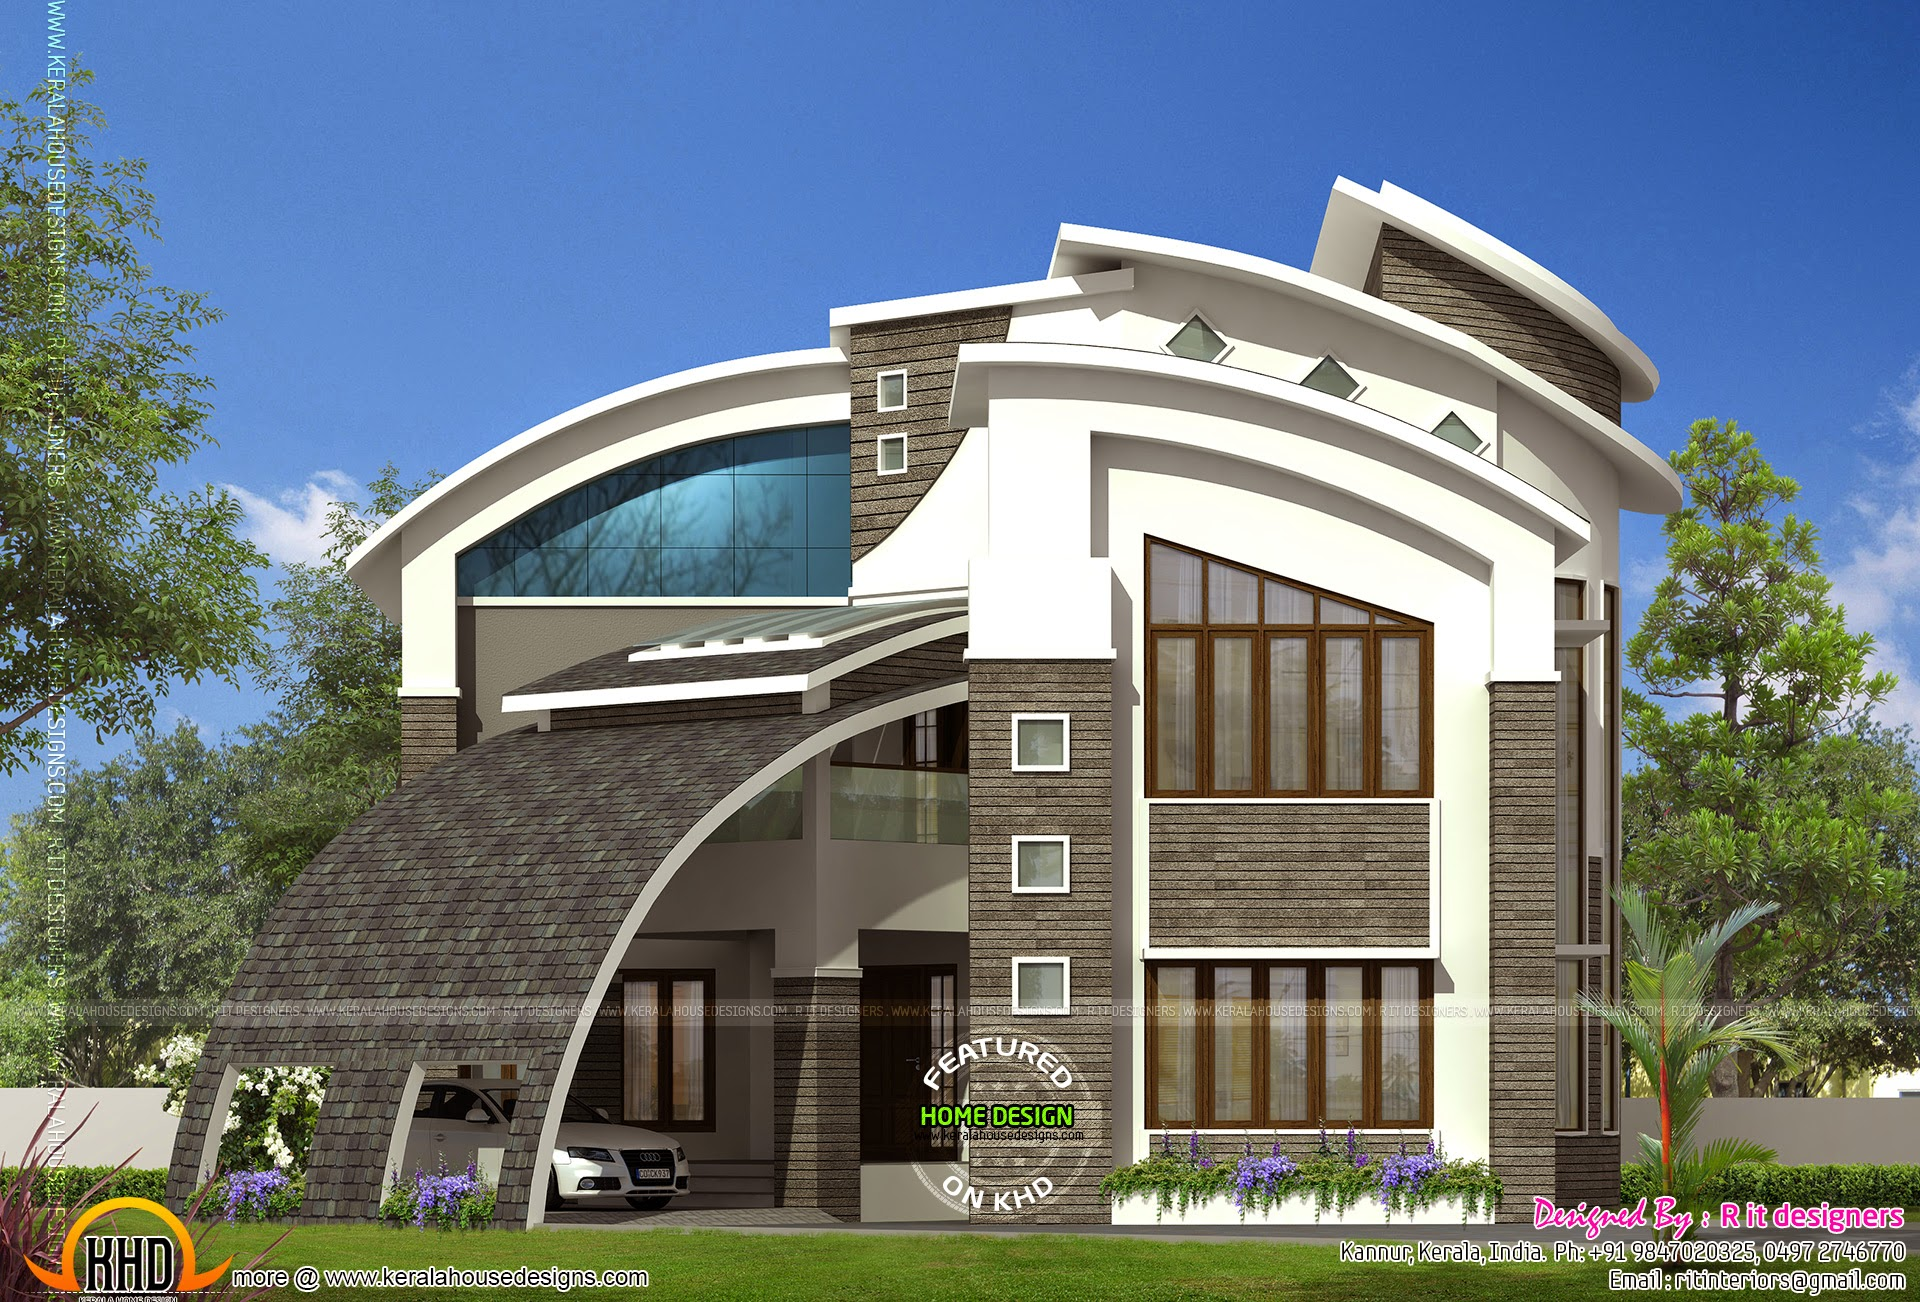 Most modern contemporary house design kerala home design for Contemporary house designs